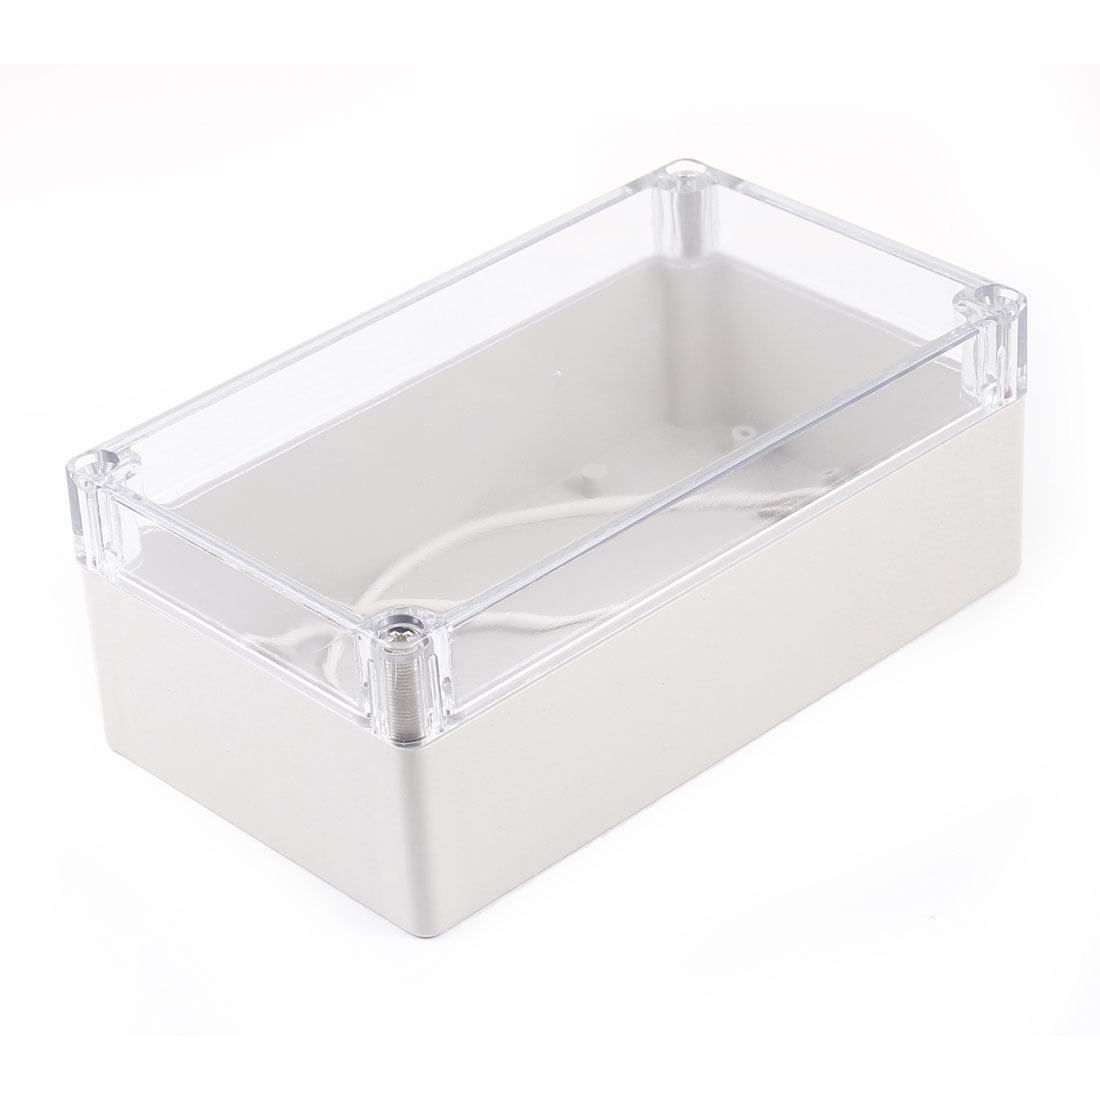 158mm x 90mm x 60mm Waterproof Clear Gray Plastic Rectangle Case Junction Box